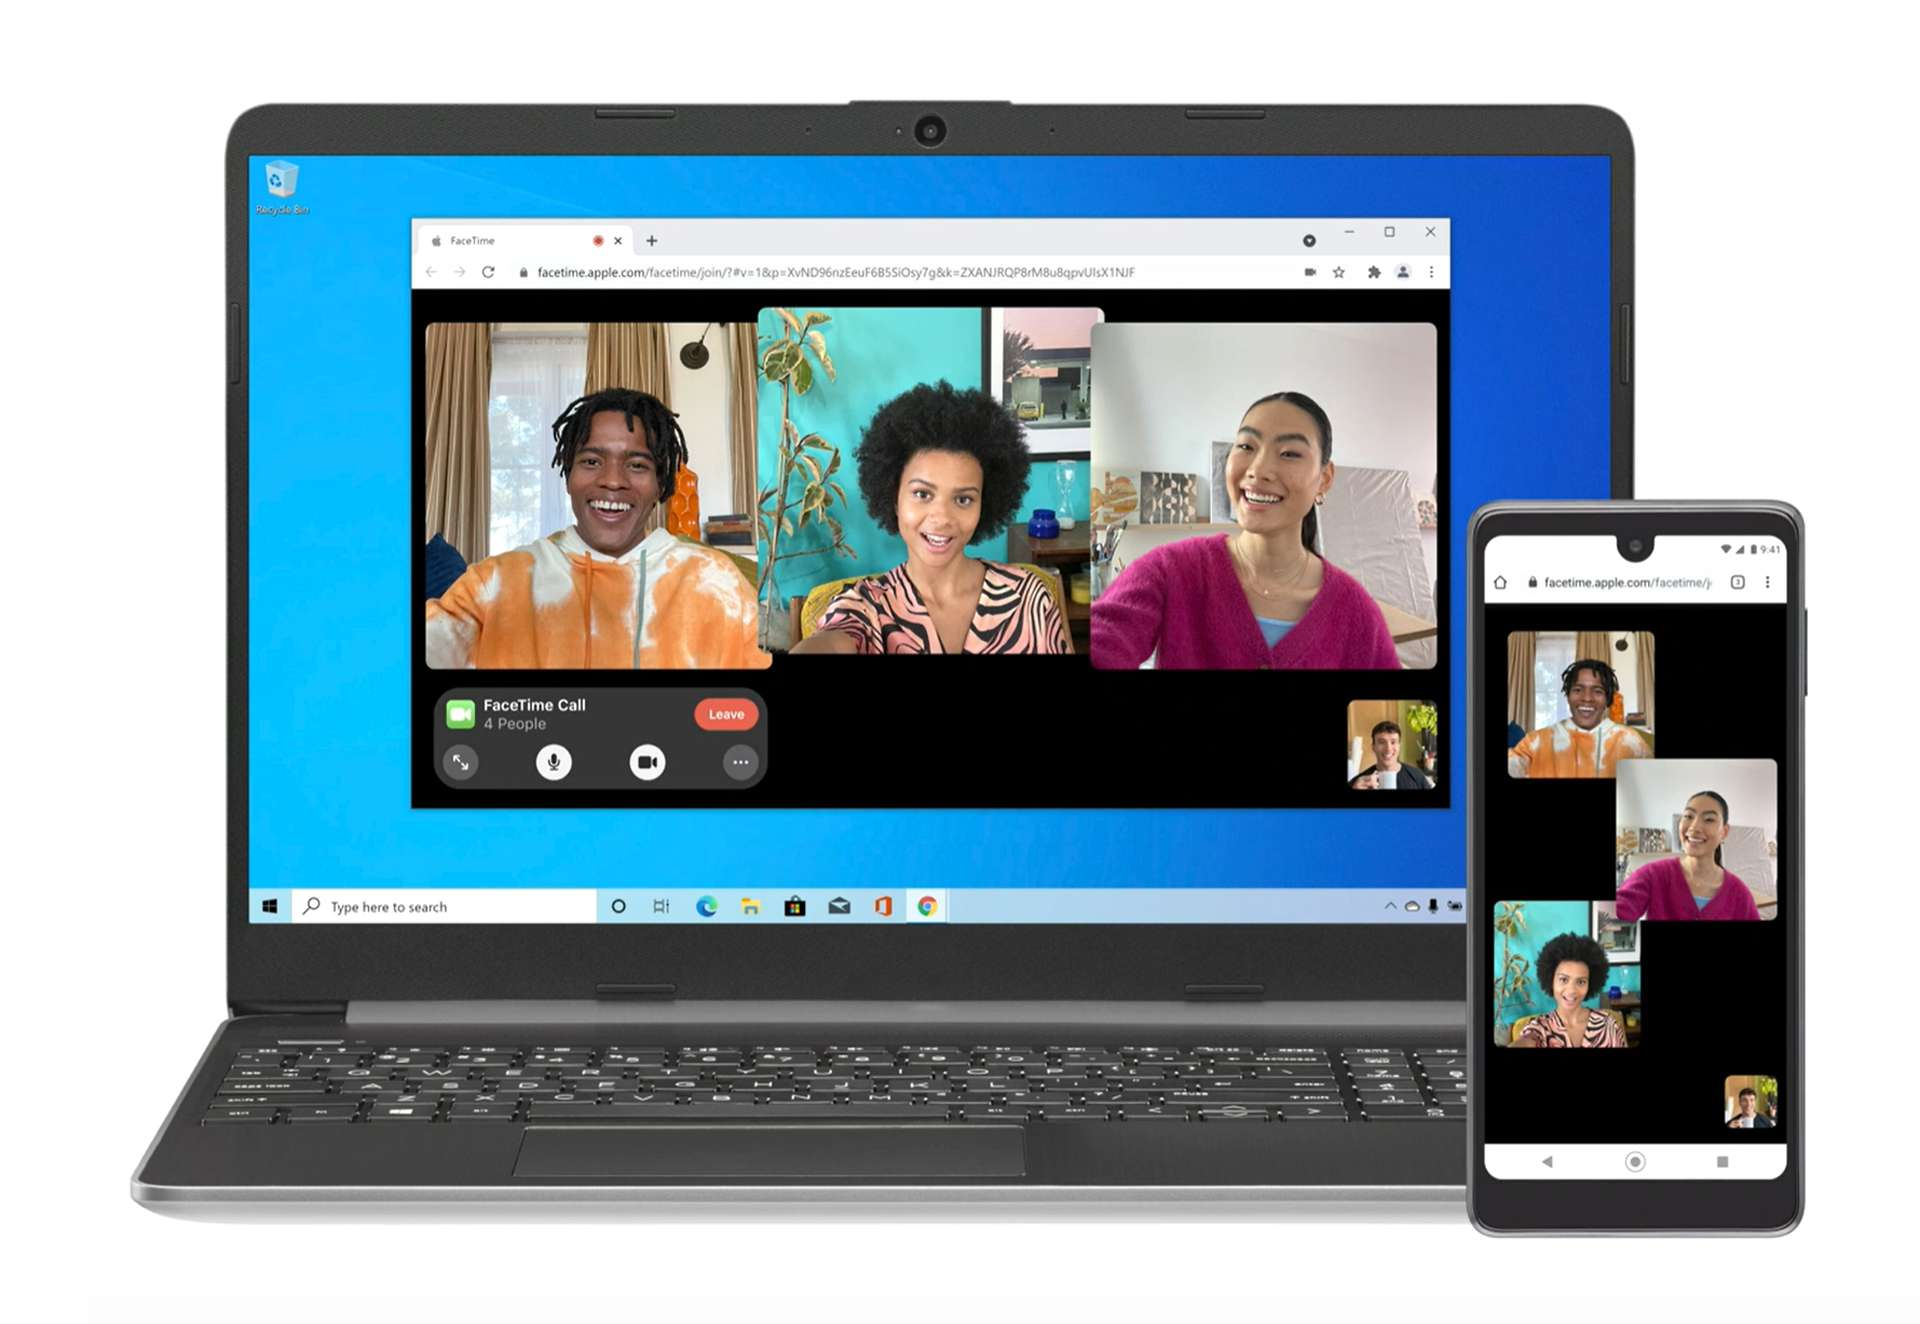 Preview concept image of FaceTime running on a Windows laptop in a web browser.